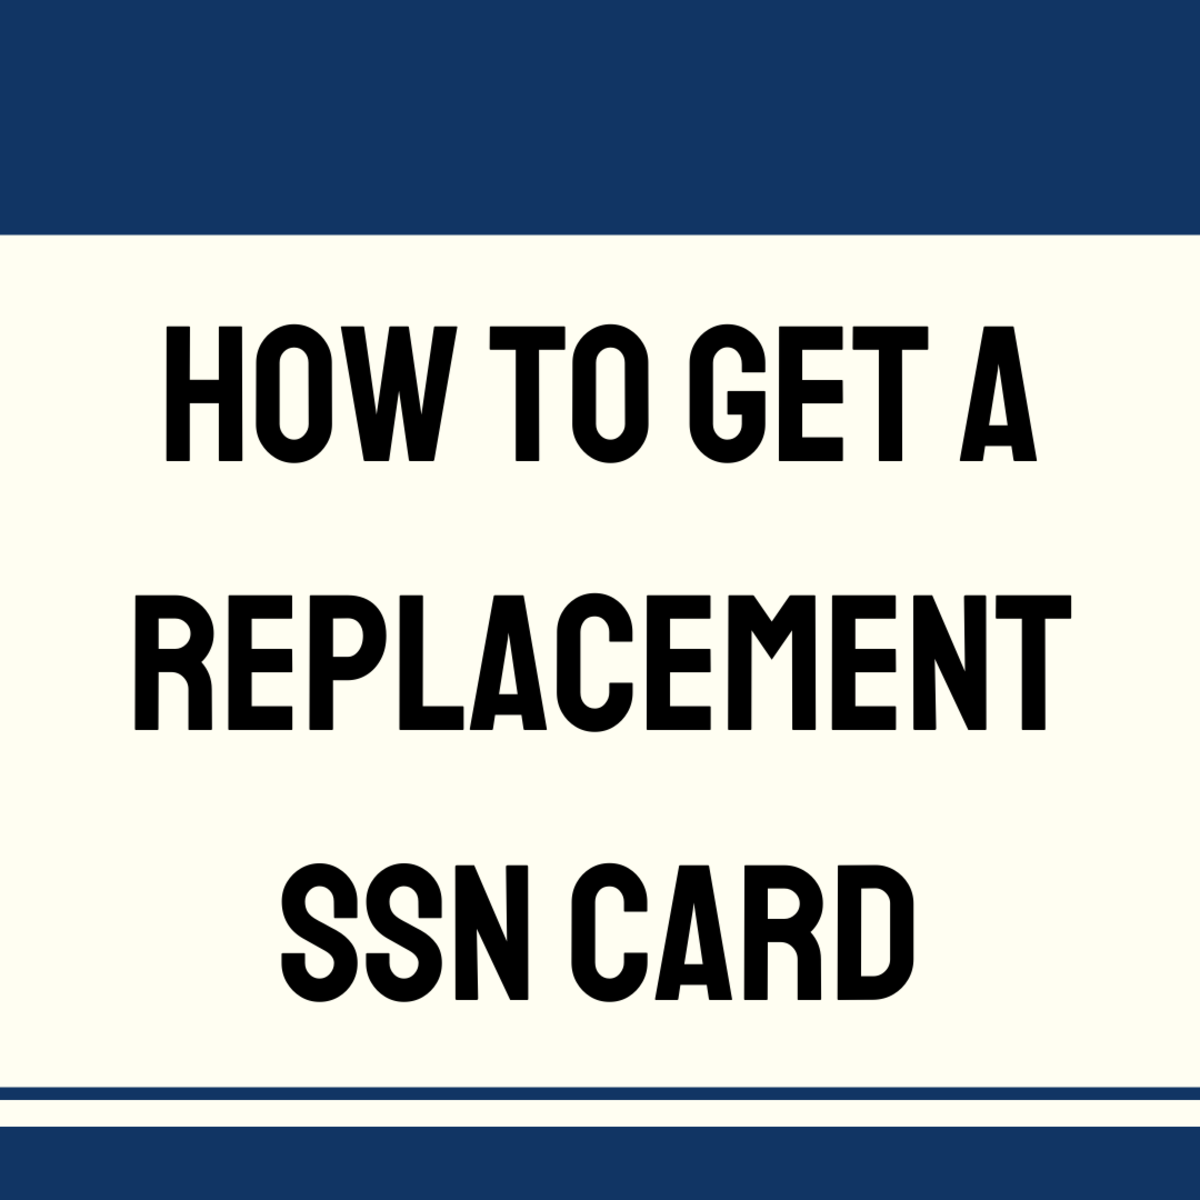 Learn how to replace your lost or stolen SSN card by visiting your local Social Security Administration office or applying online at SSA.gov.